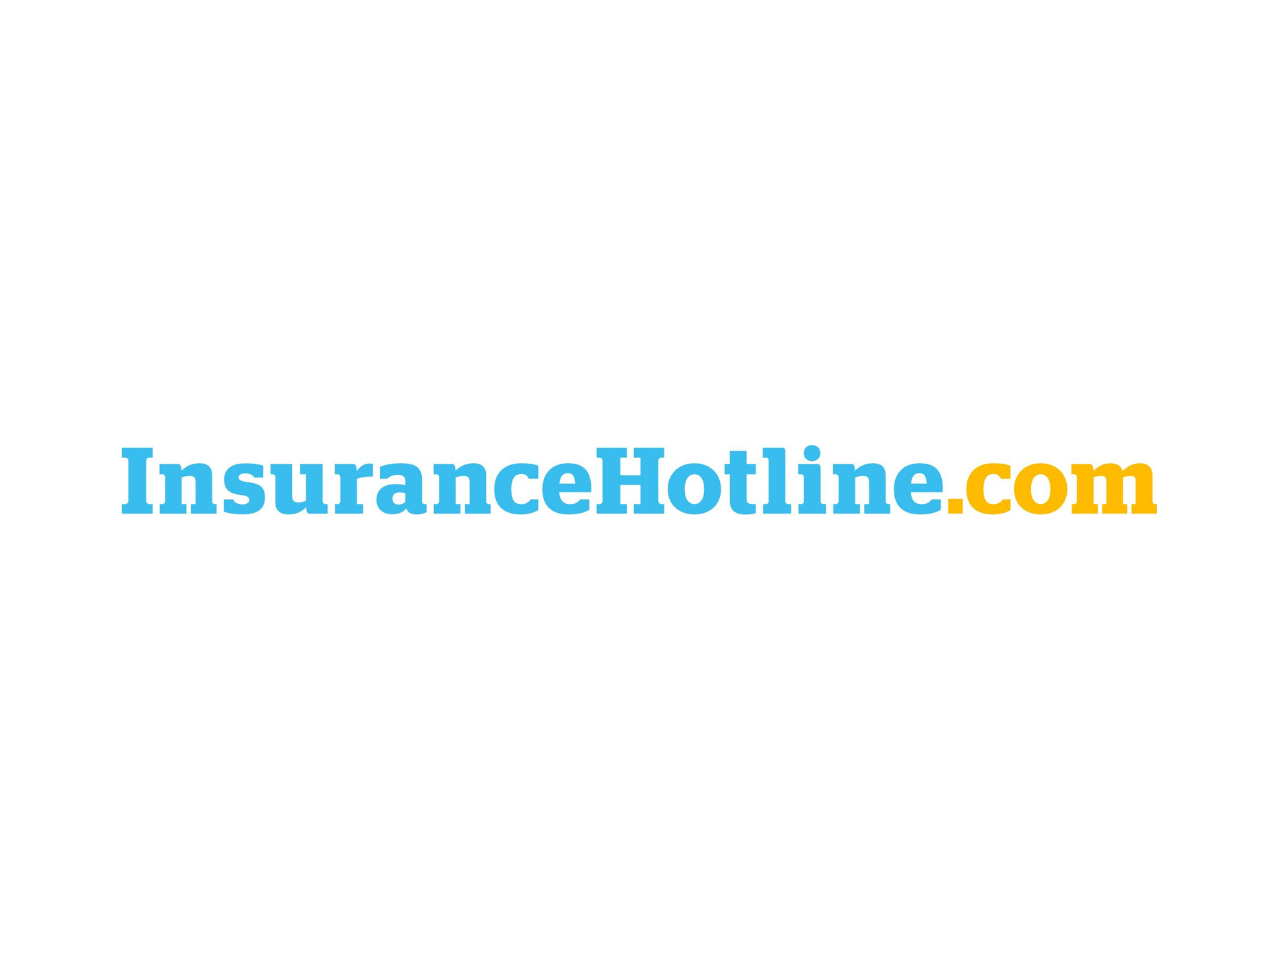 InsuranceHotline Review